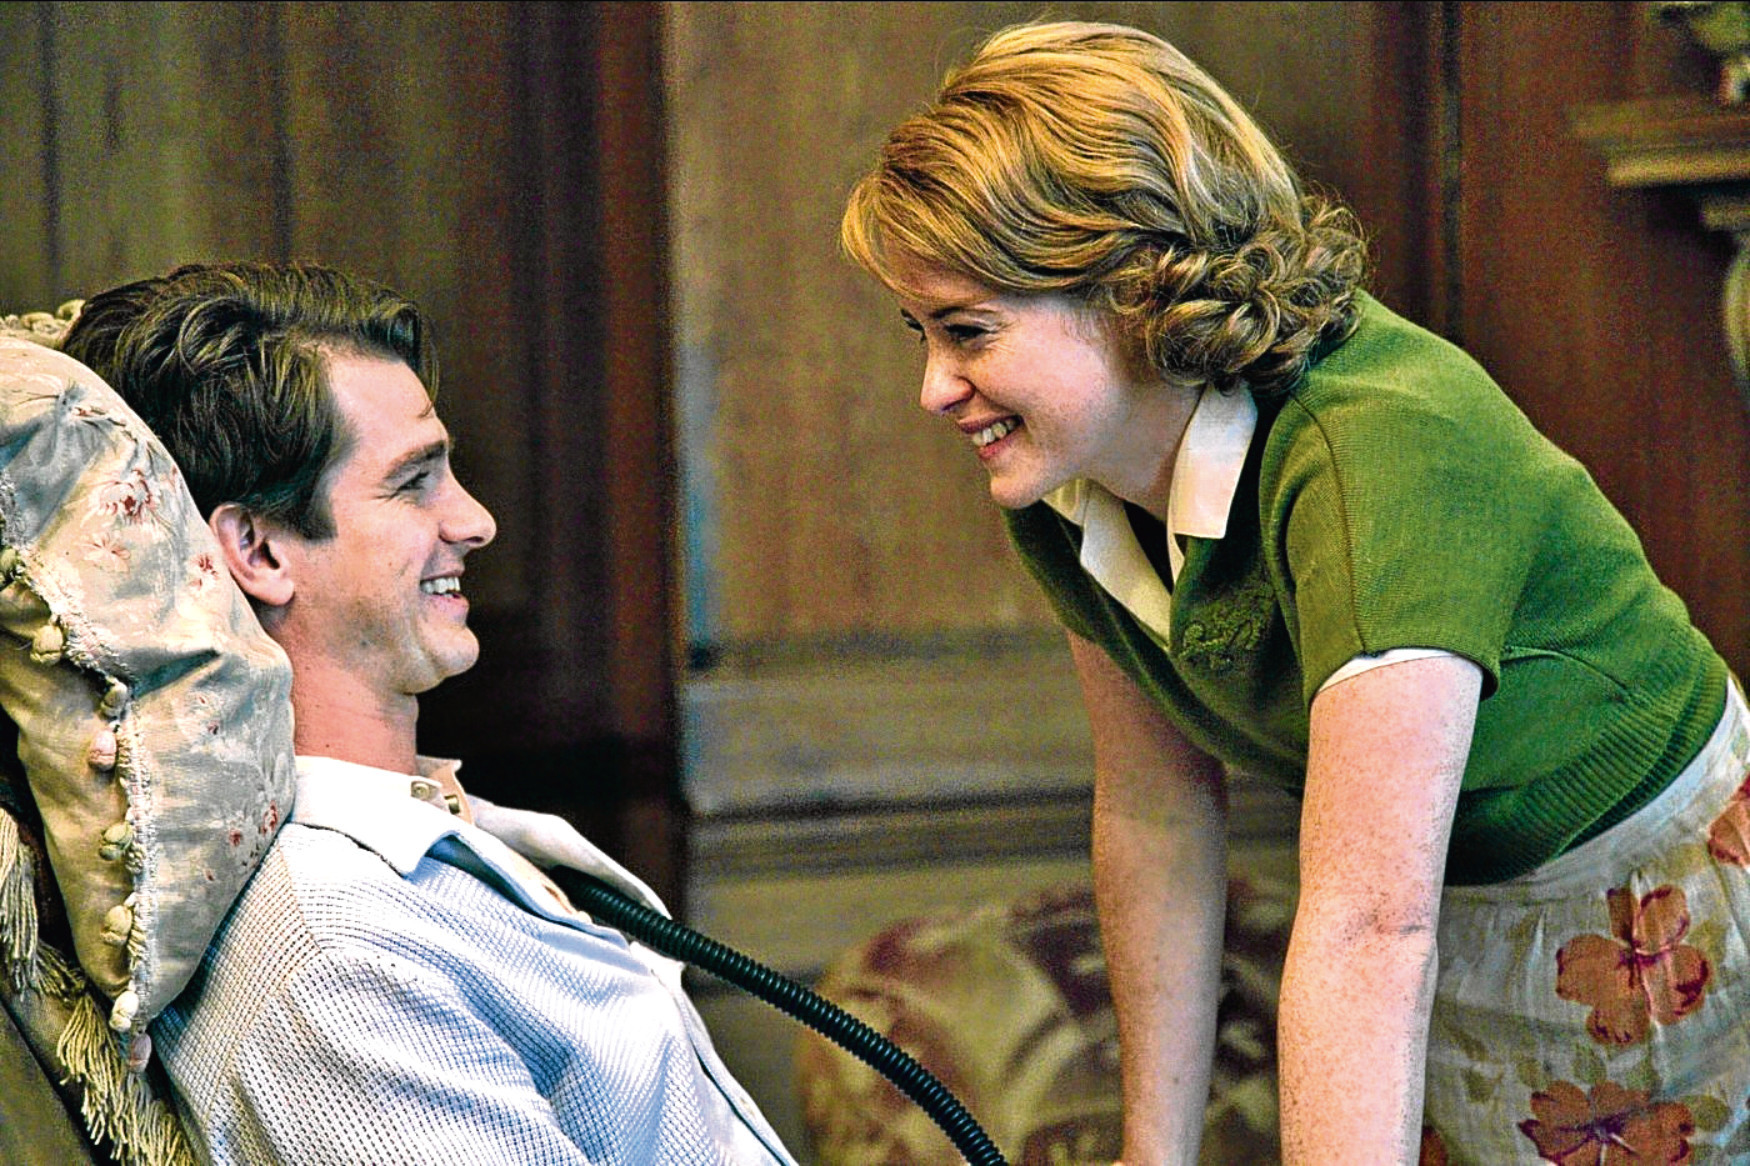 Andrew Garfield and Claire Foy in Breathe (Allstar/IMAGINARIUM PRODUCTIONS)